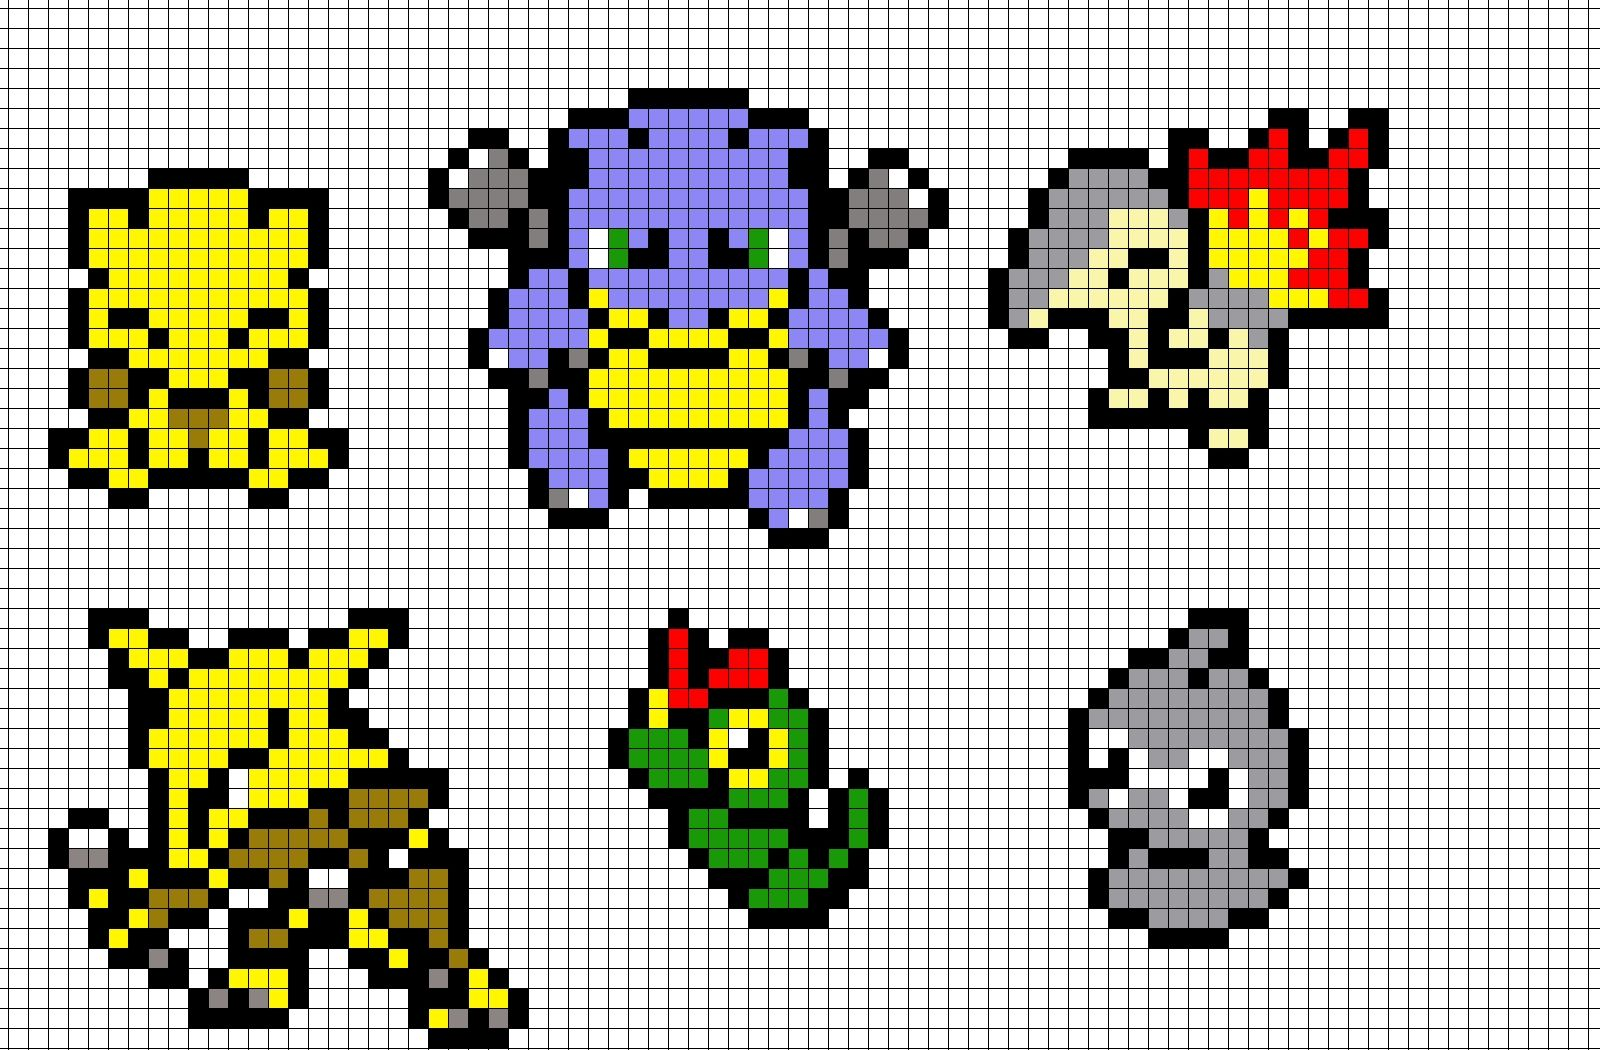 Pokemon Pixel Art Templates Pokemon Pixel Art By Brainless937 Fan